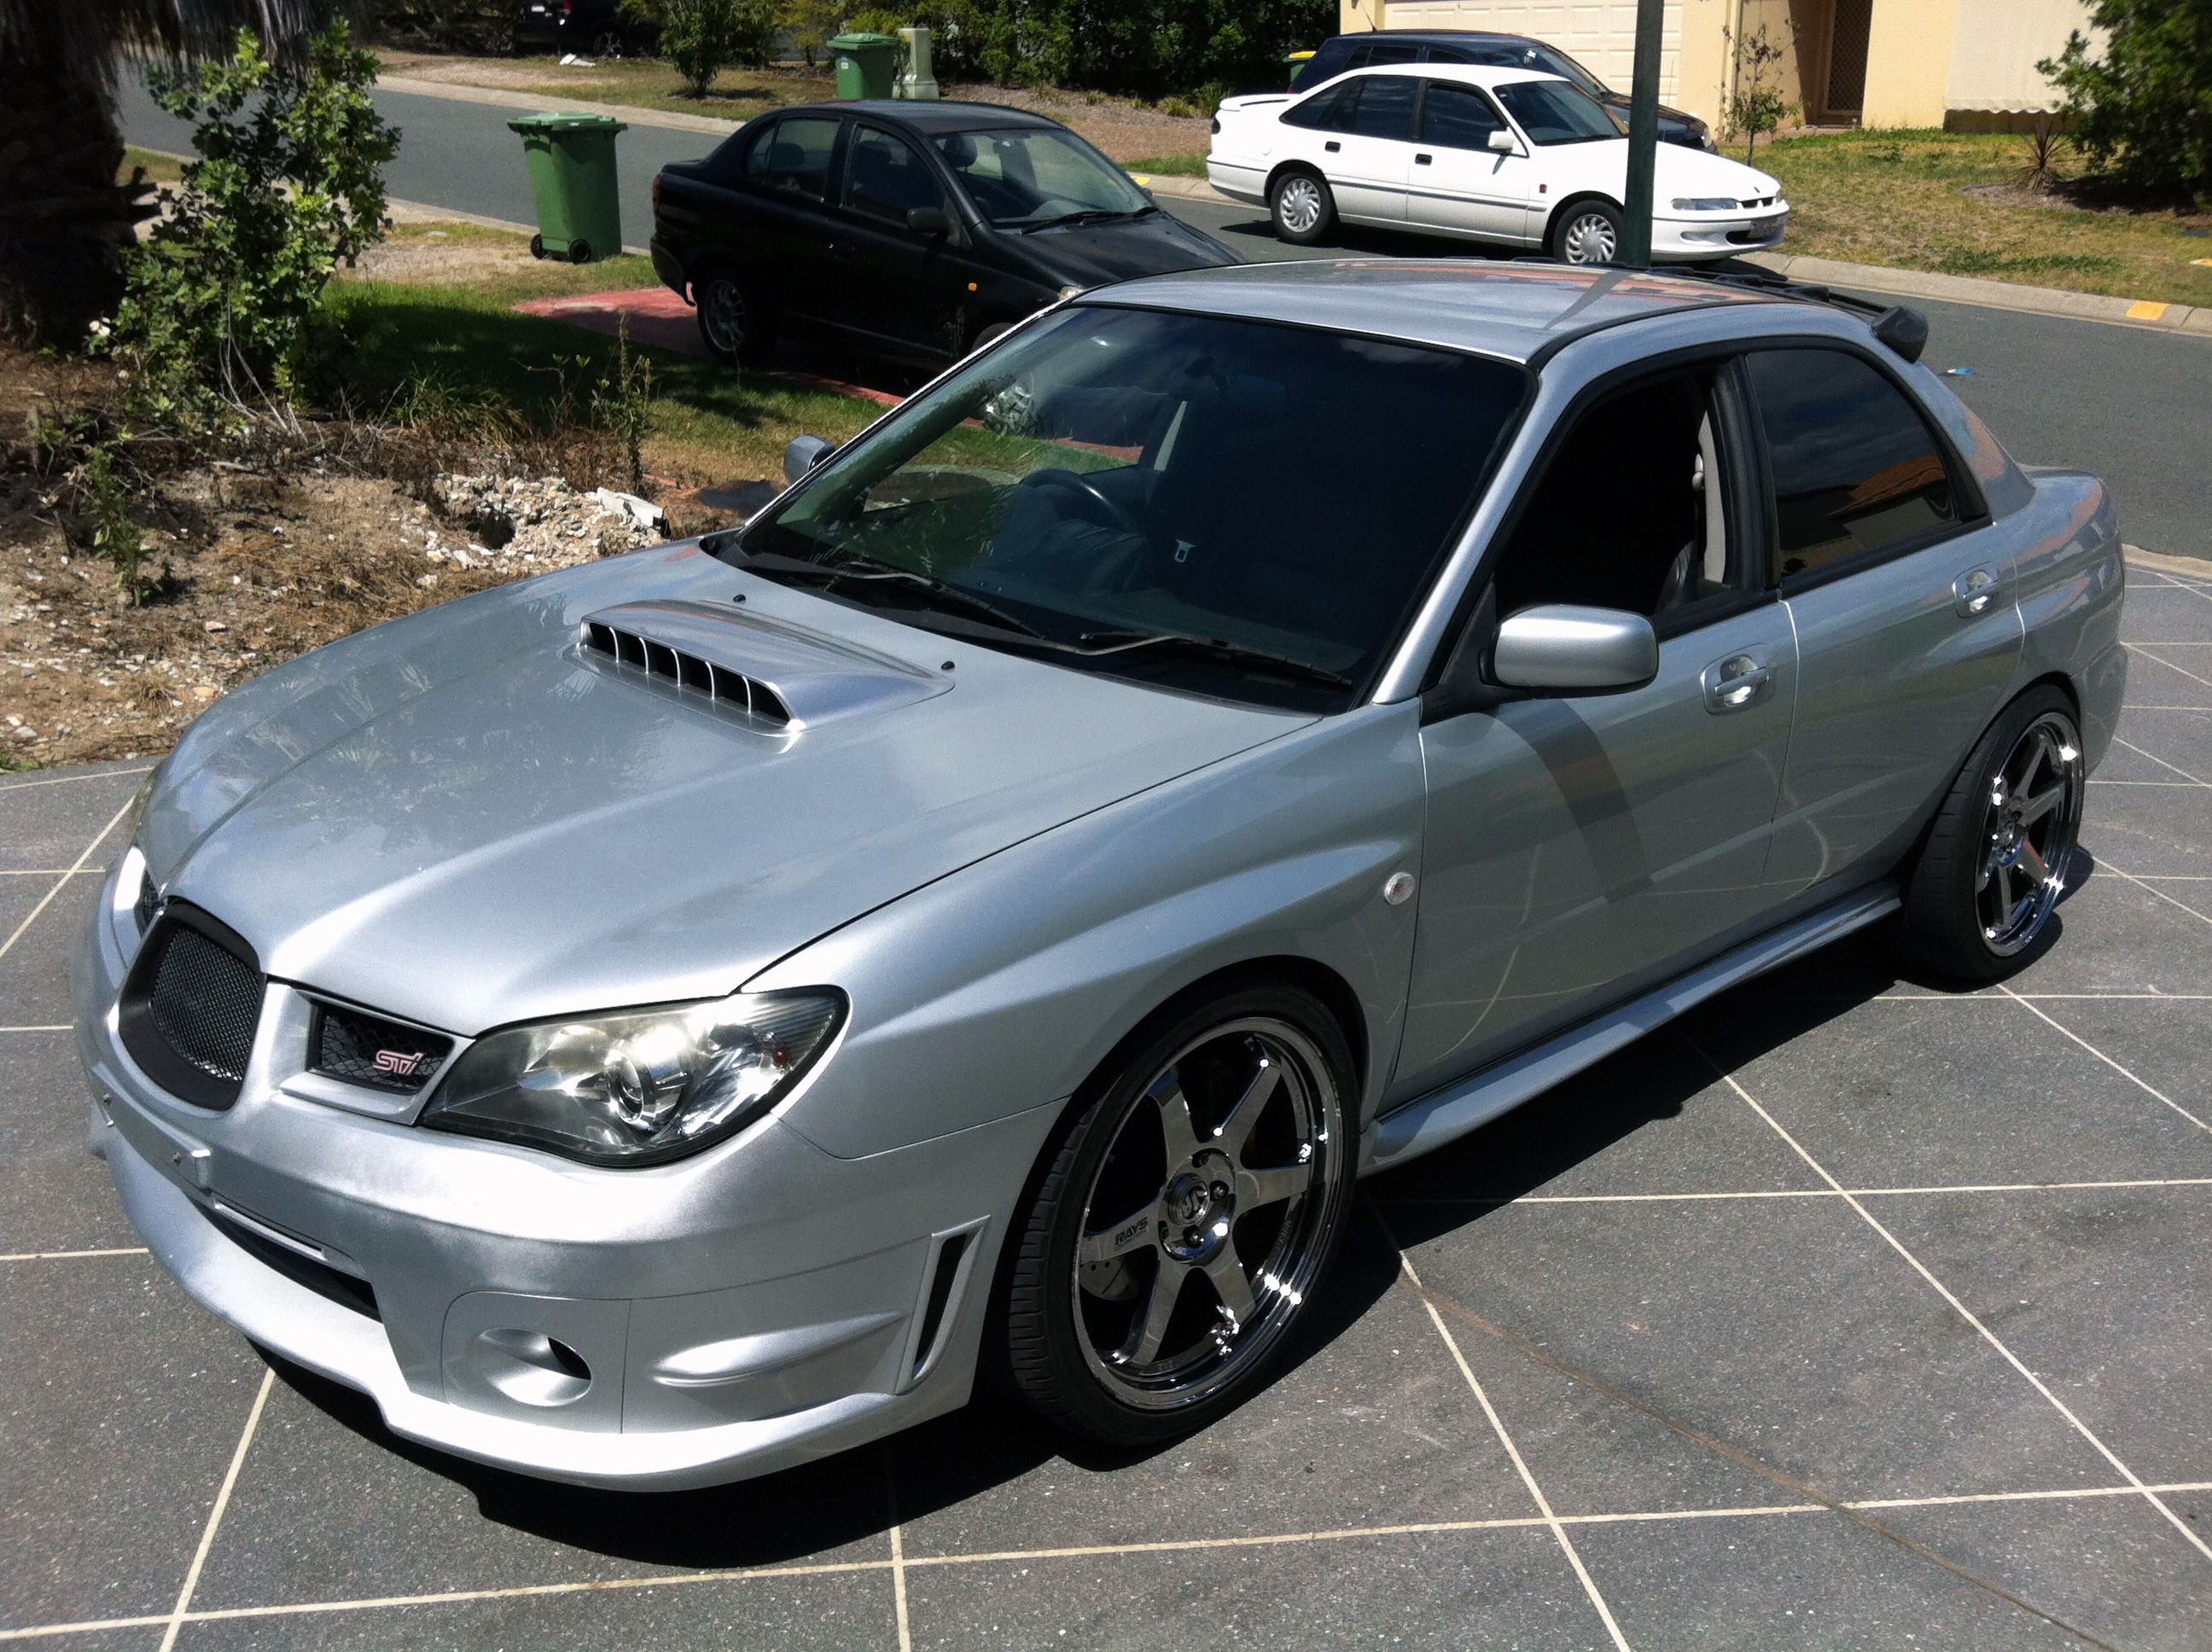 2006 subaru impreza wrx awd my06 for sale qld gold coast. Black Bedroom Furniture Sets. Home Design Ideas